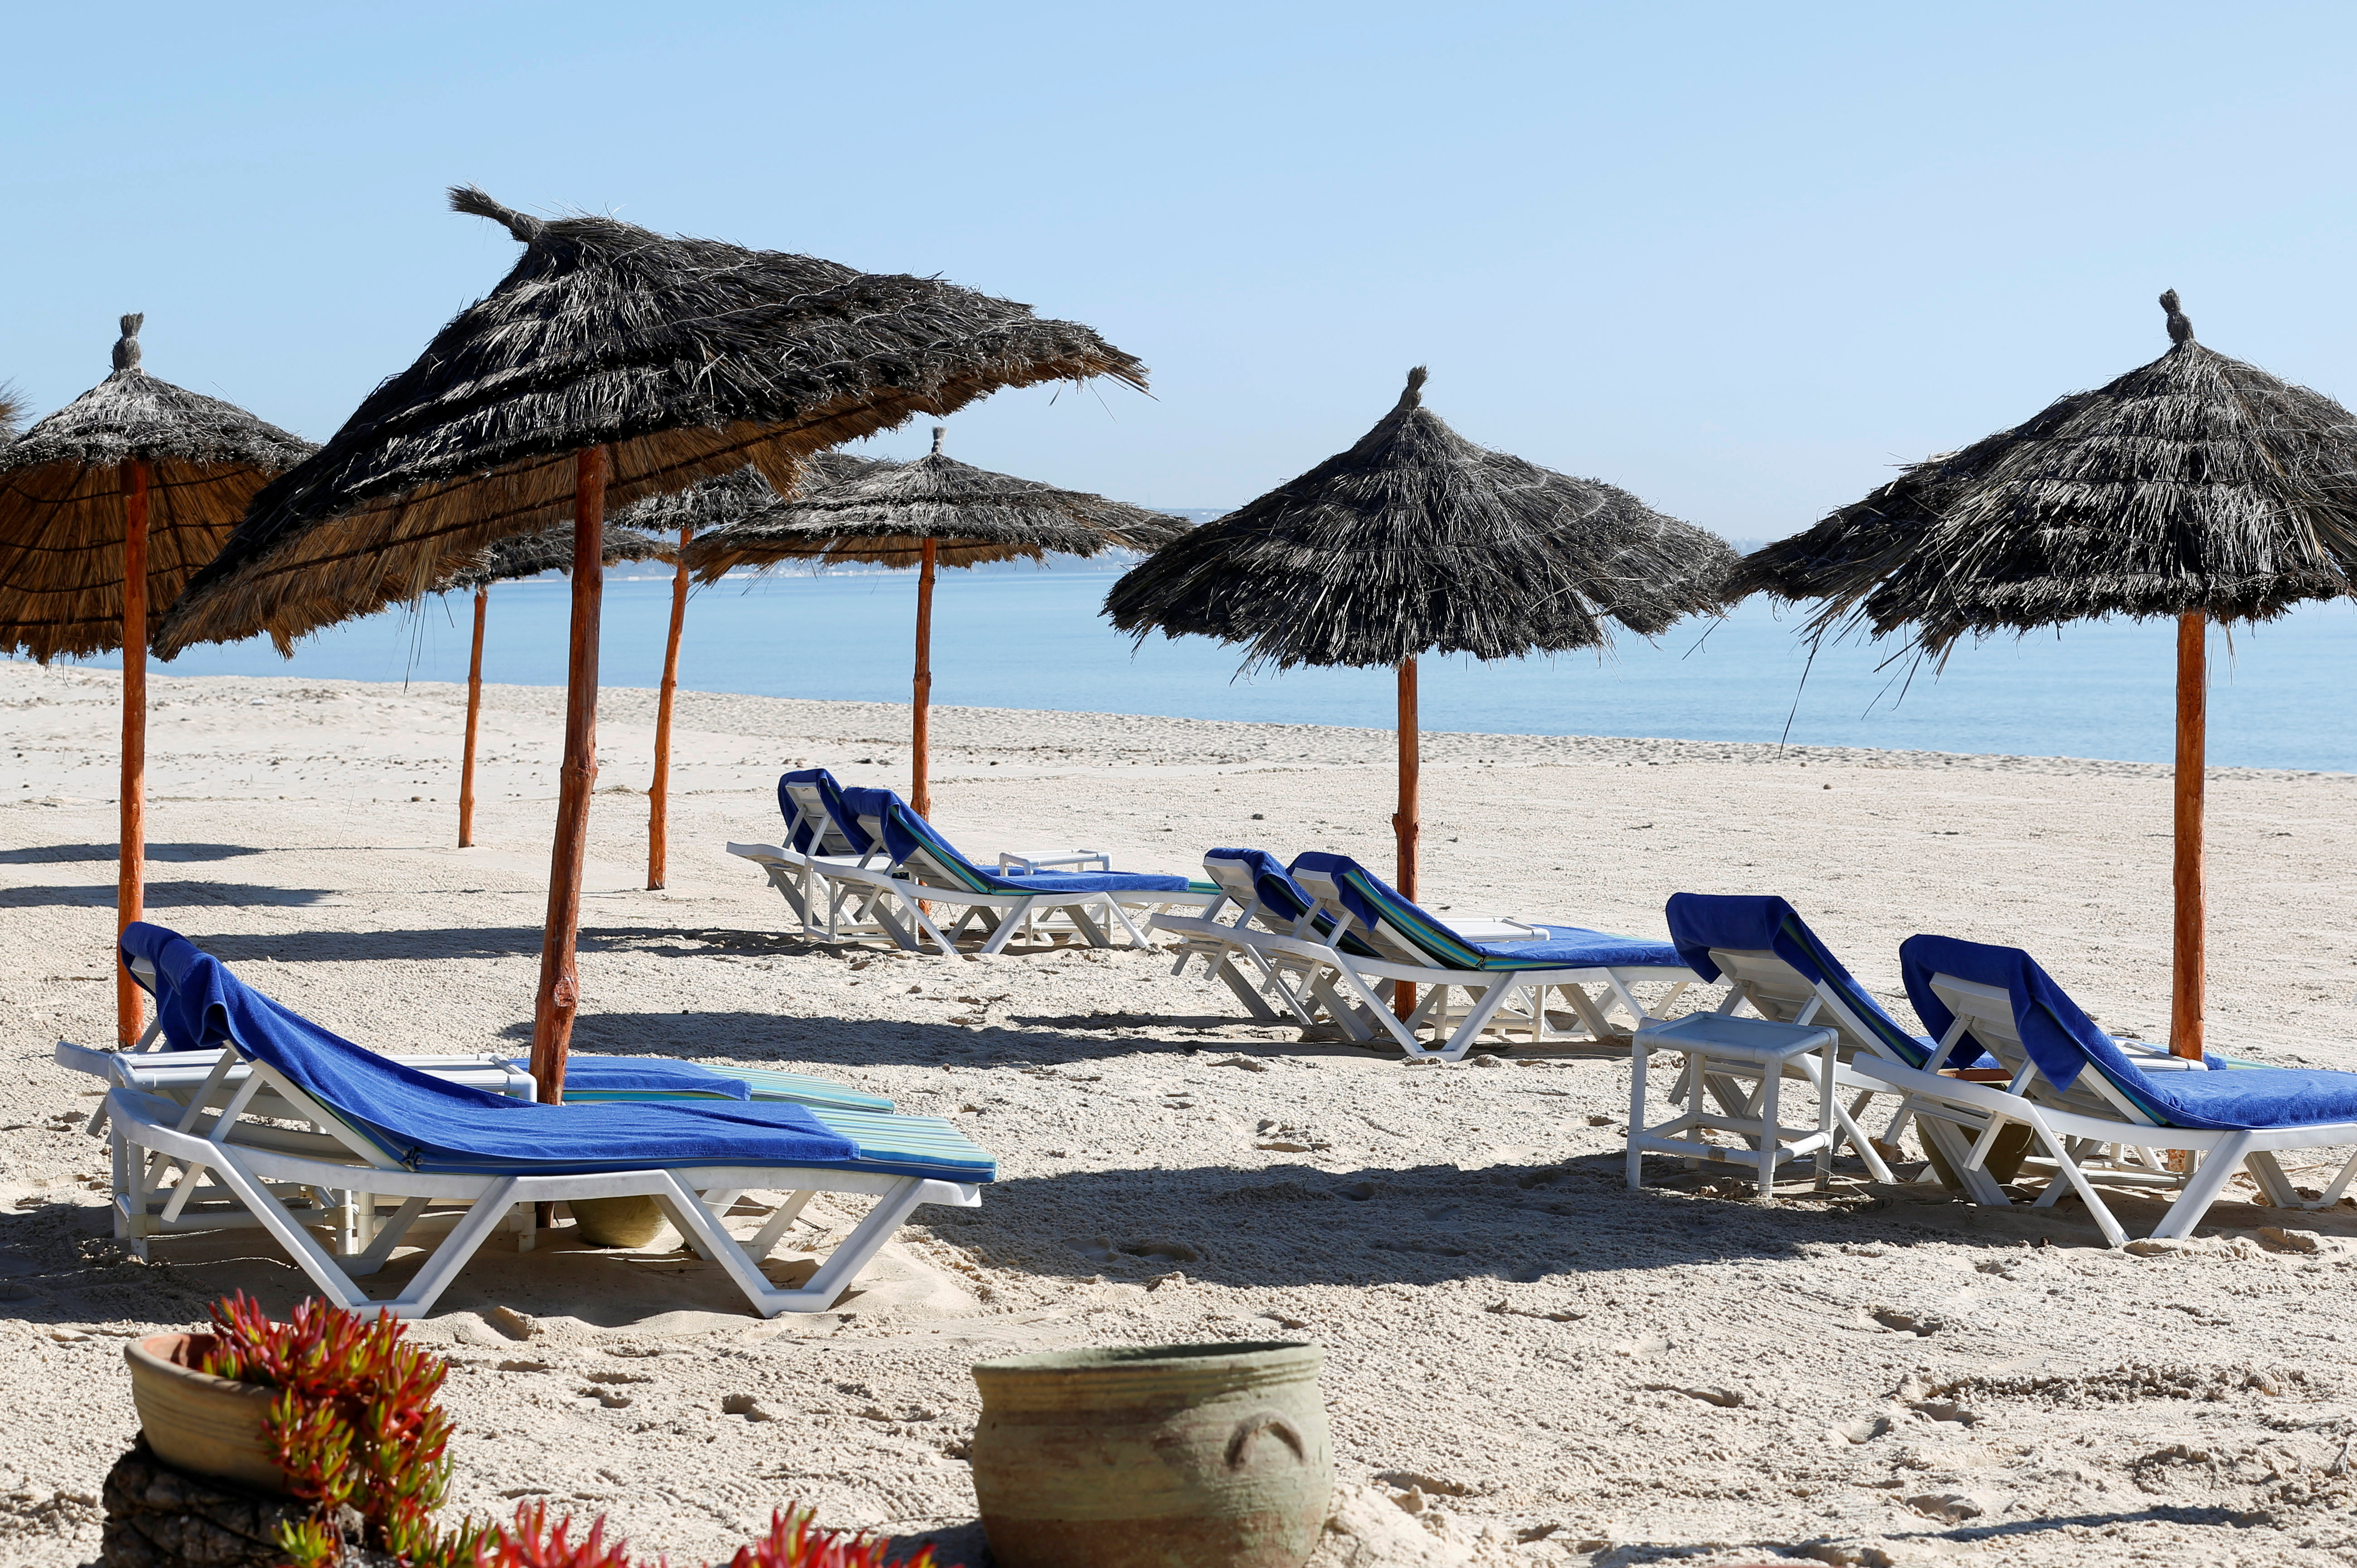 Empty sunbathing chairs are seen on a beach near the Hasdrubal Hotel in Hammamet, Tunisia , March 12, 2020. Picture taken March 12, 2020. REUTERS/Zoubeir Souissi